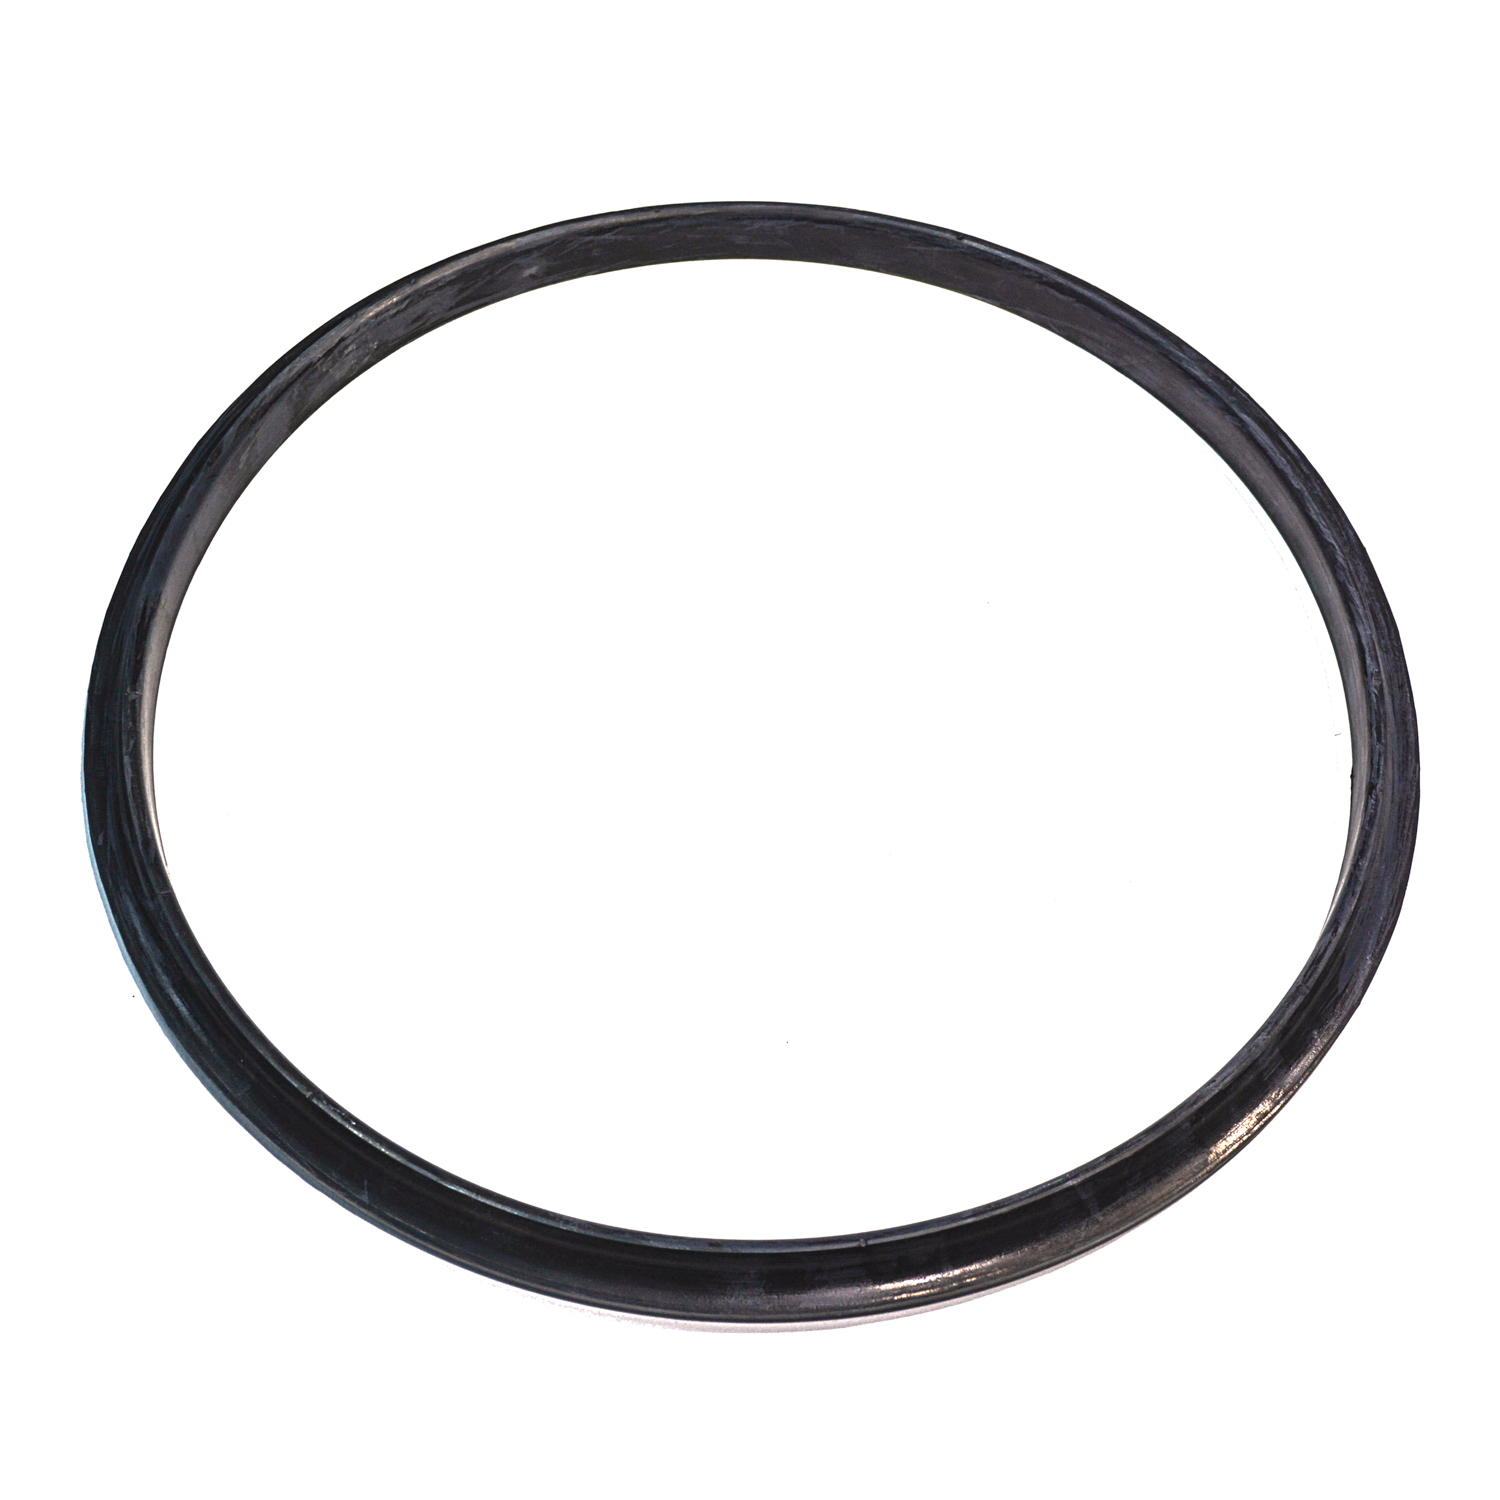 2.5 Barrell Grundy Tank Top Clamped Manway Gasket